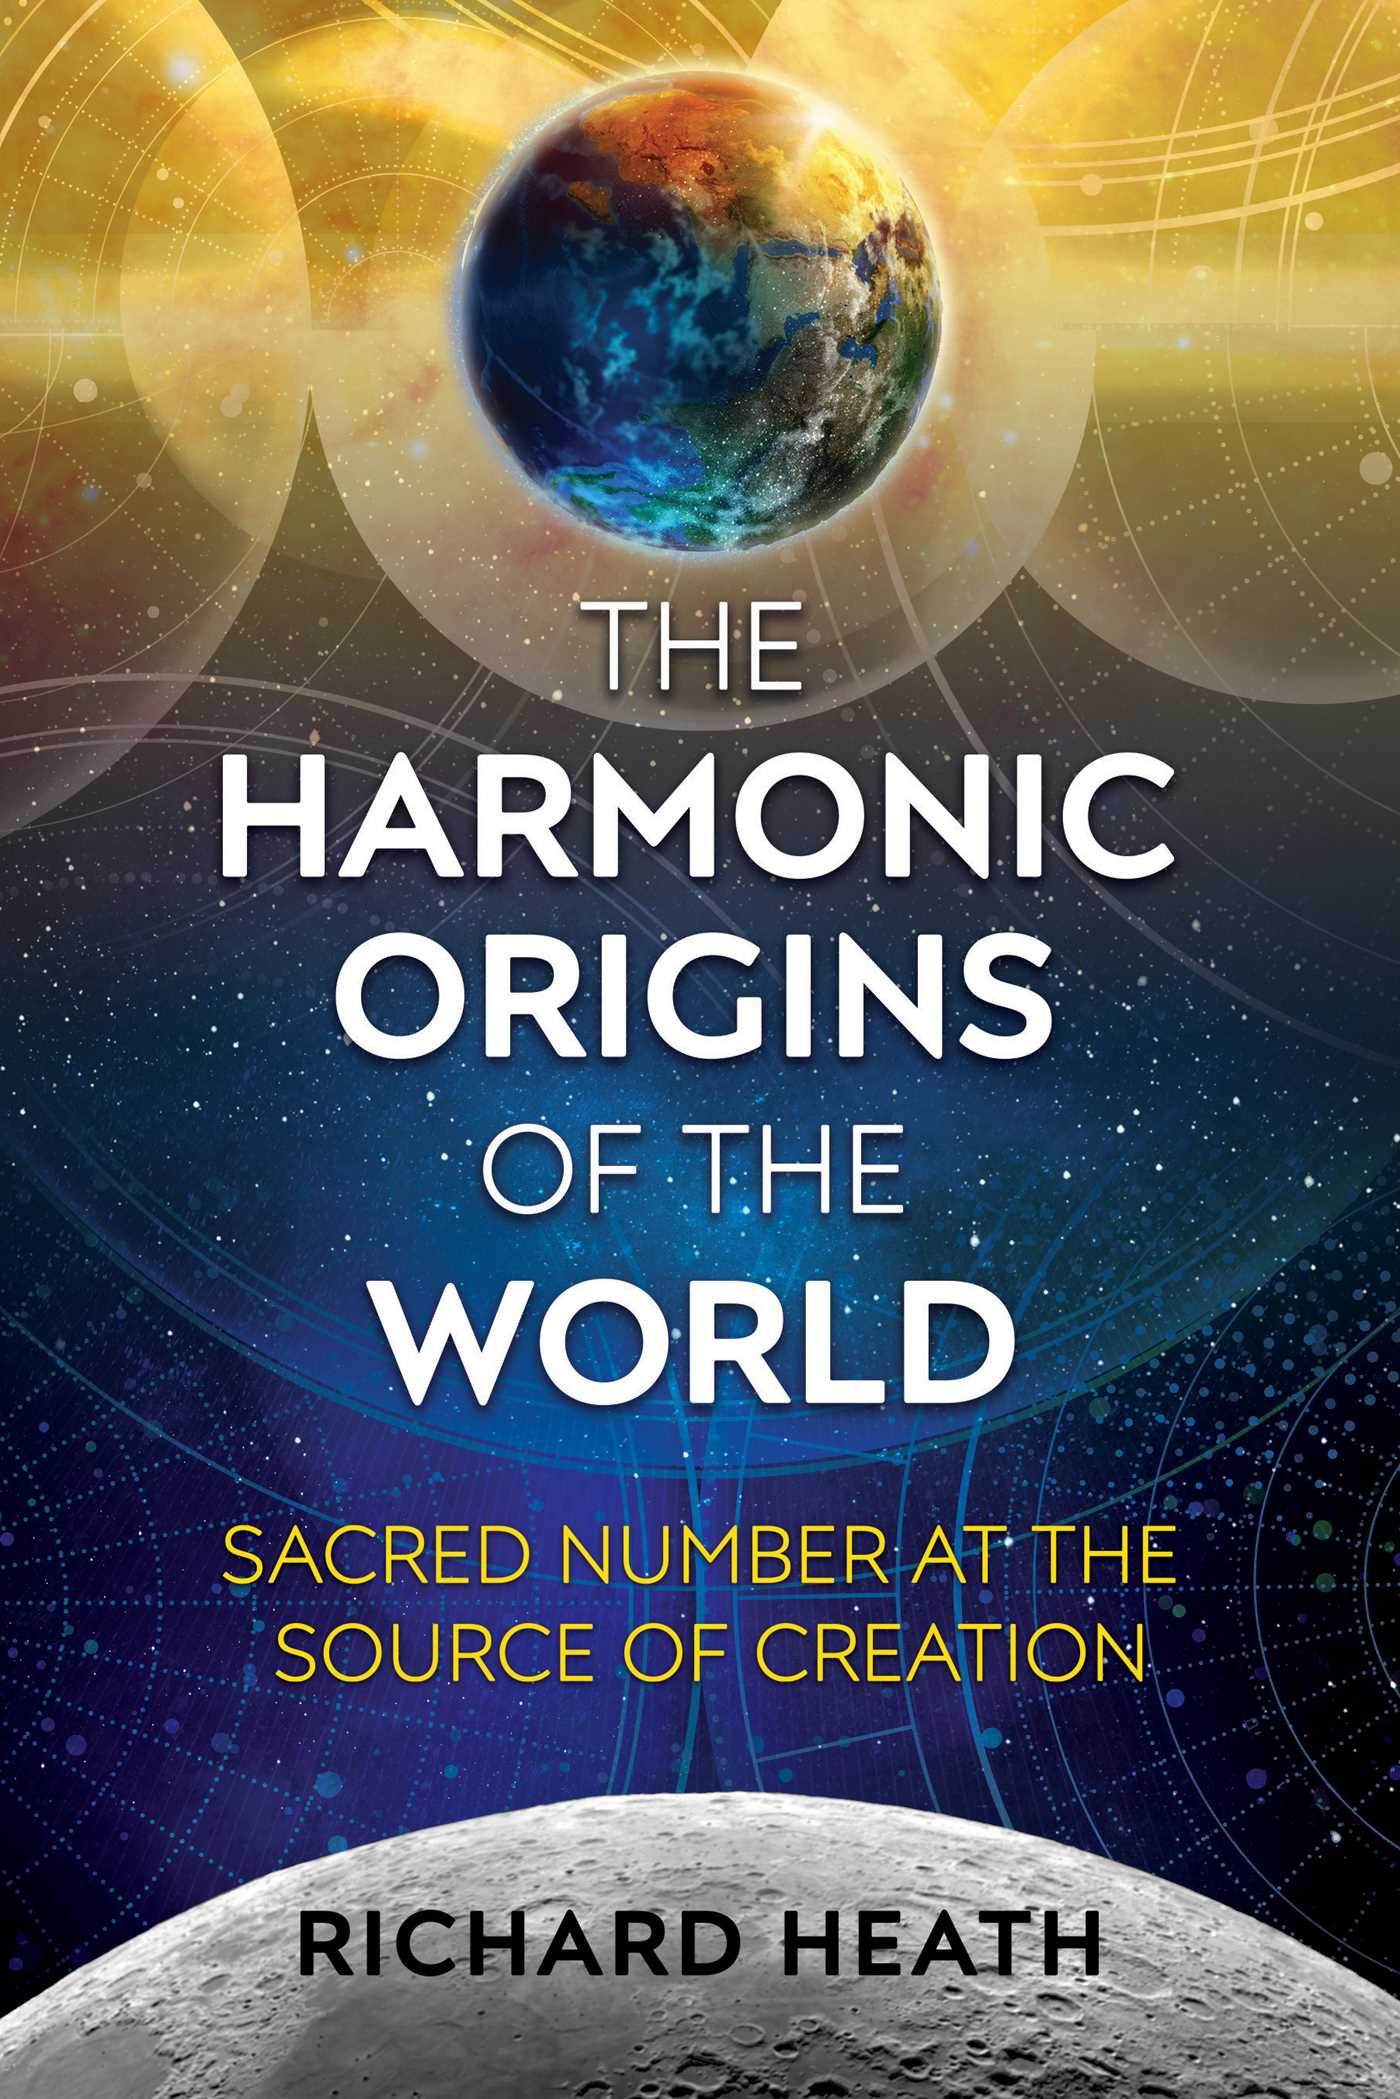 The harmonic origins of the world 9781620556122 hr